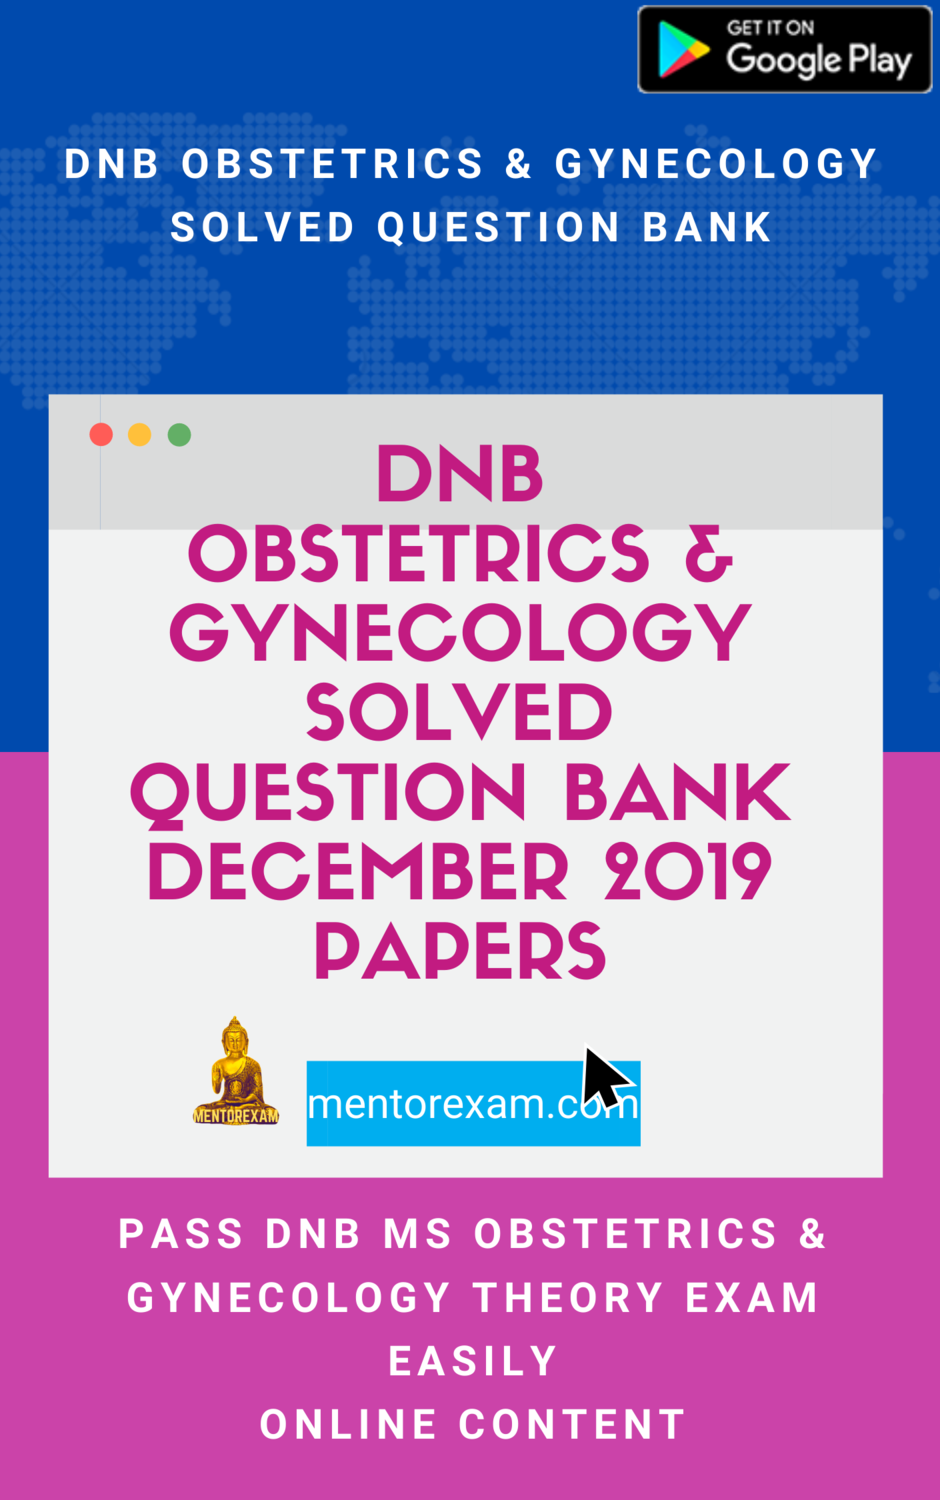 DNB Obstetrics & Gynecology Solved Question Bank December 2019 Papers online android